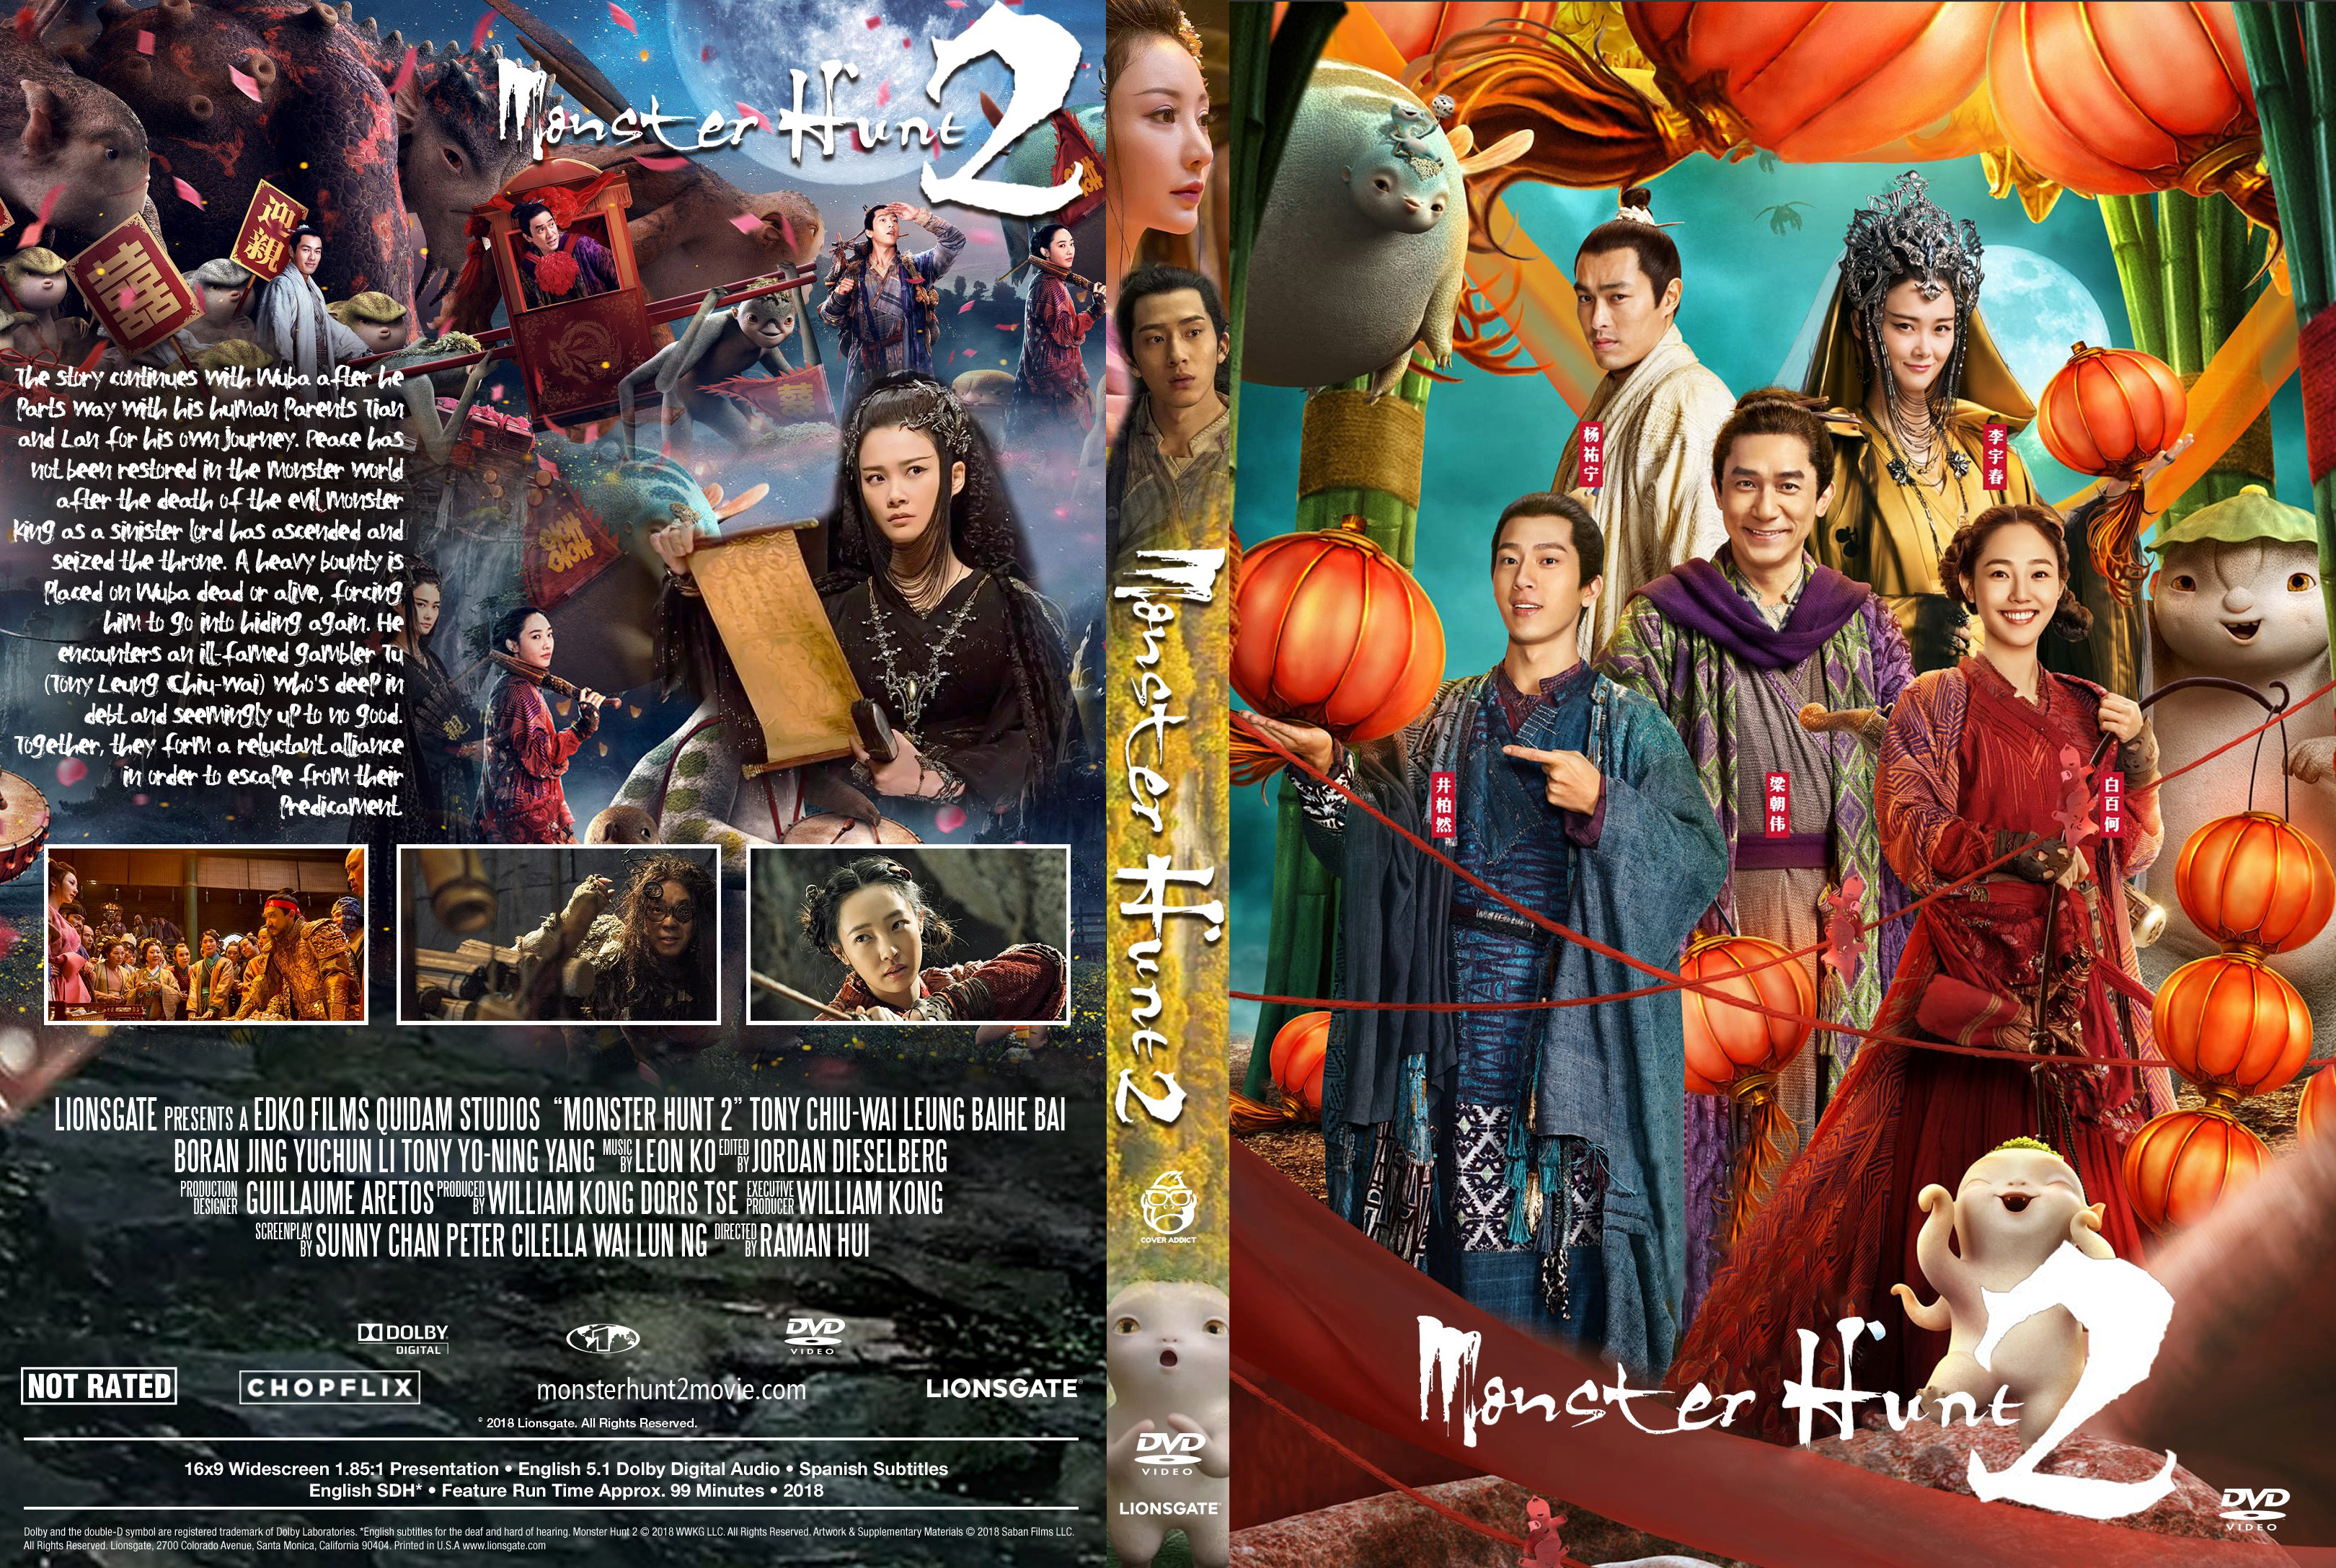 monster hunt 2 movie